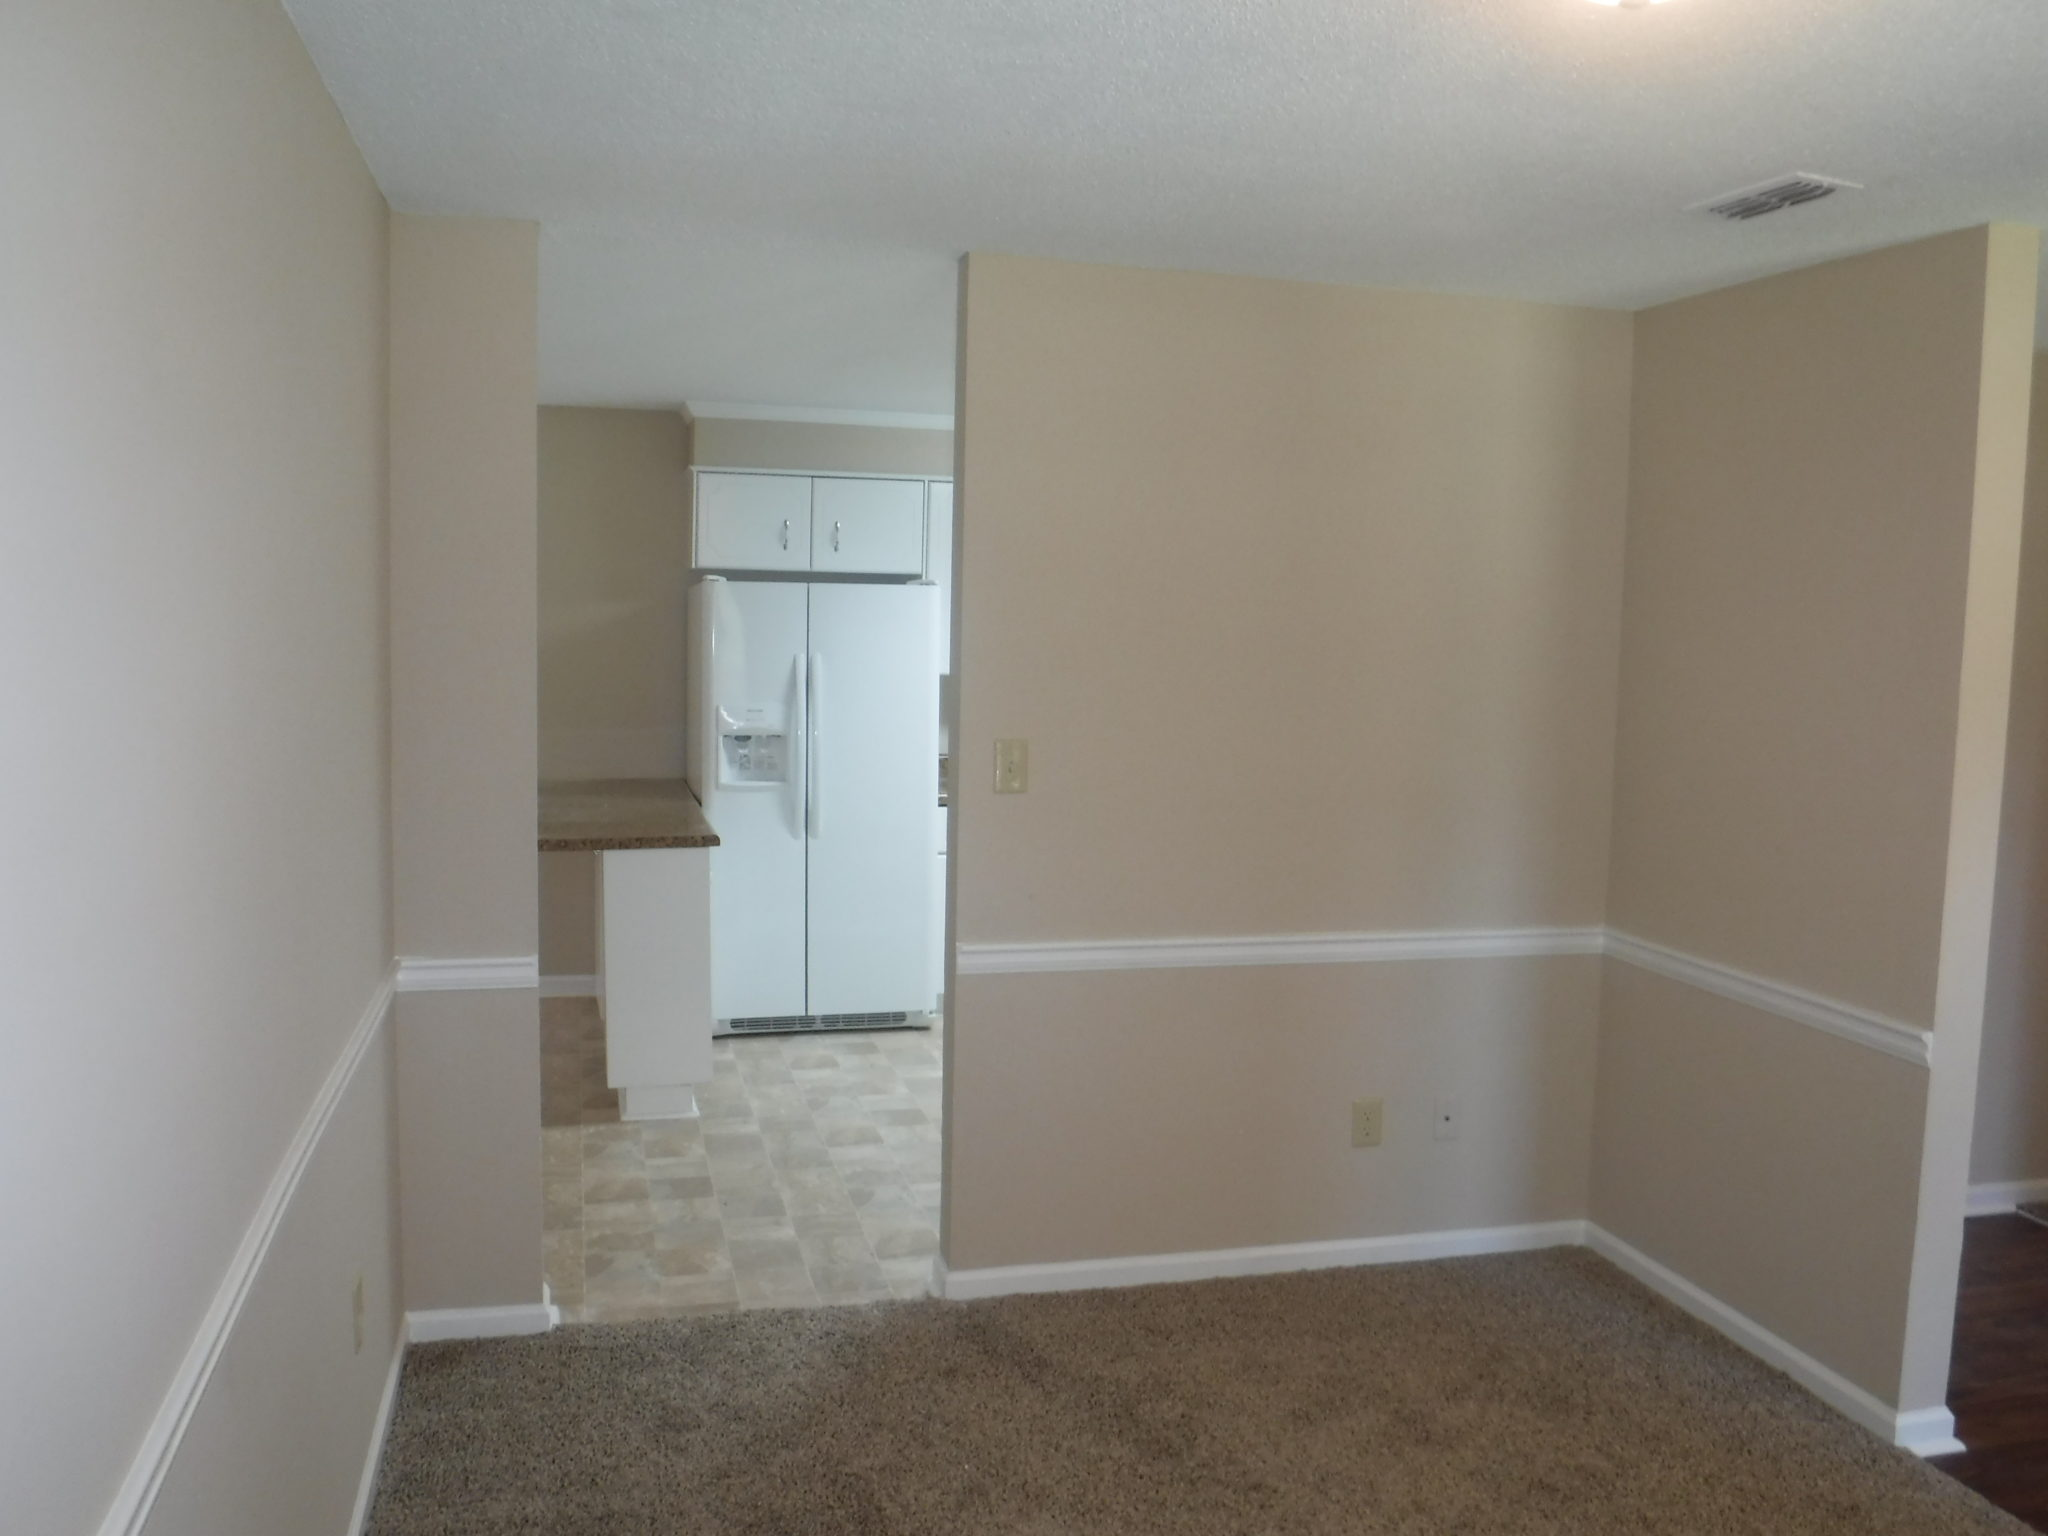 10 x 14 separate living room with door to family sized - Doors to separate kitchen from living room ...